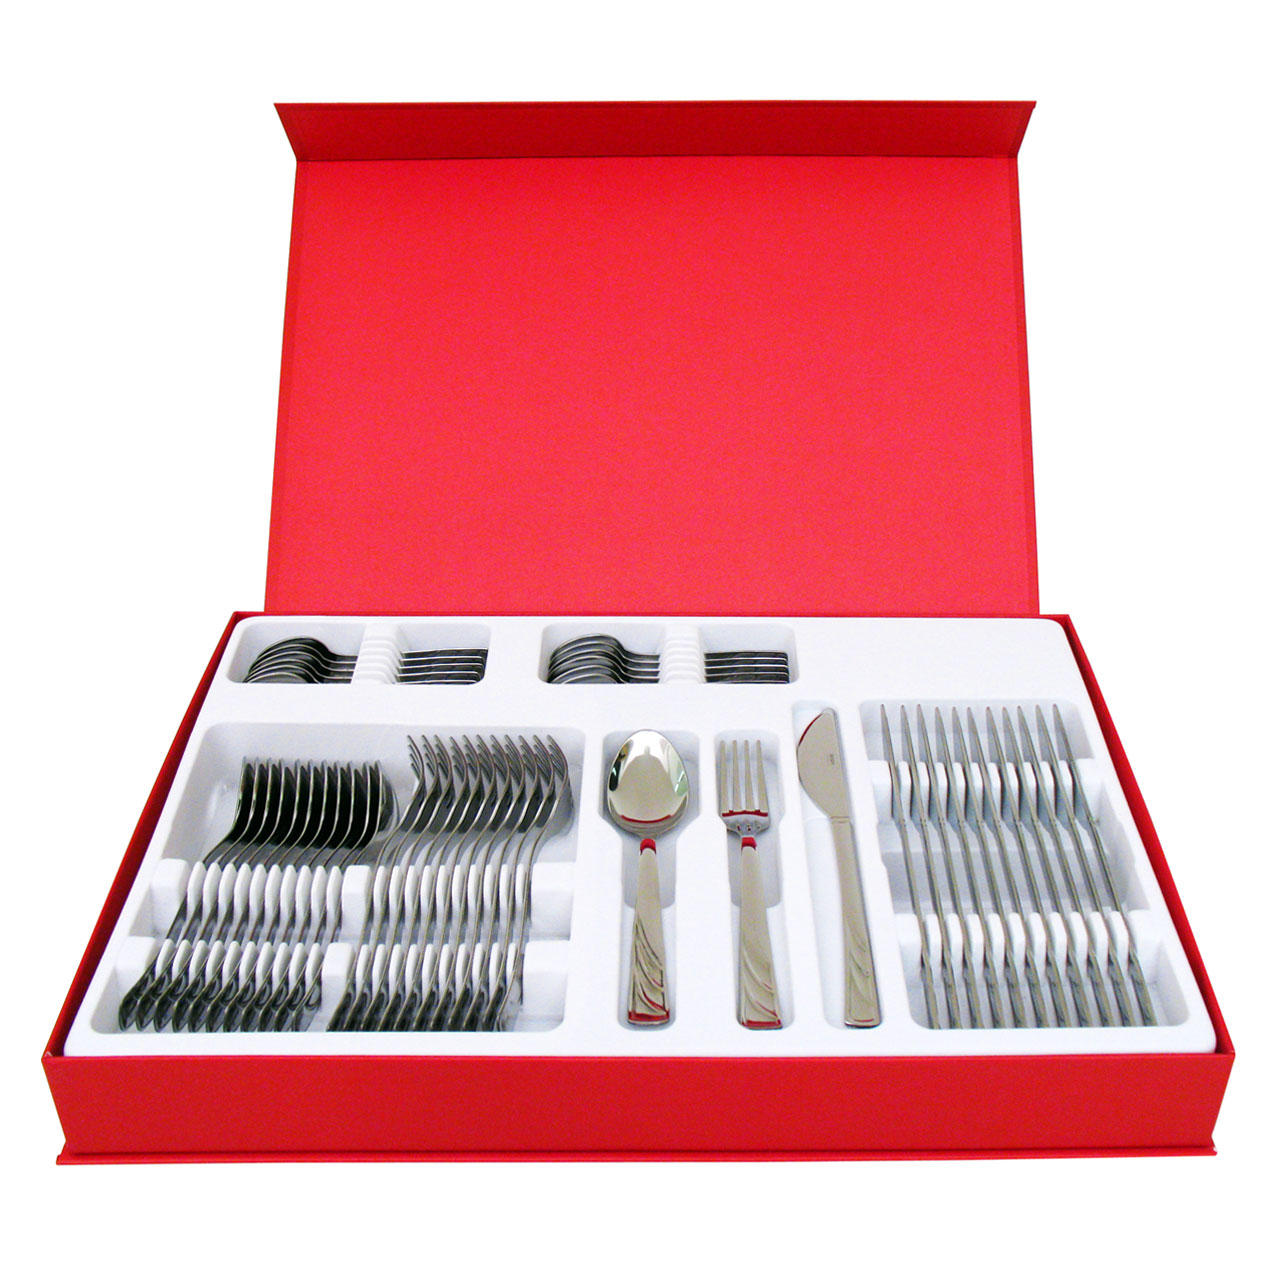 66320048 48 pcs. cutlery set forged knife Design Case